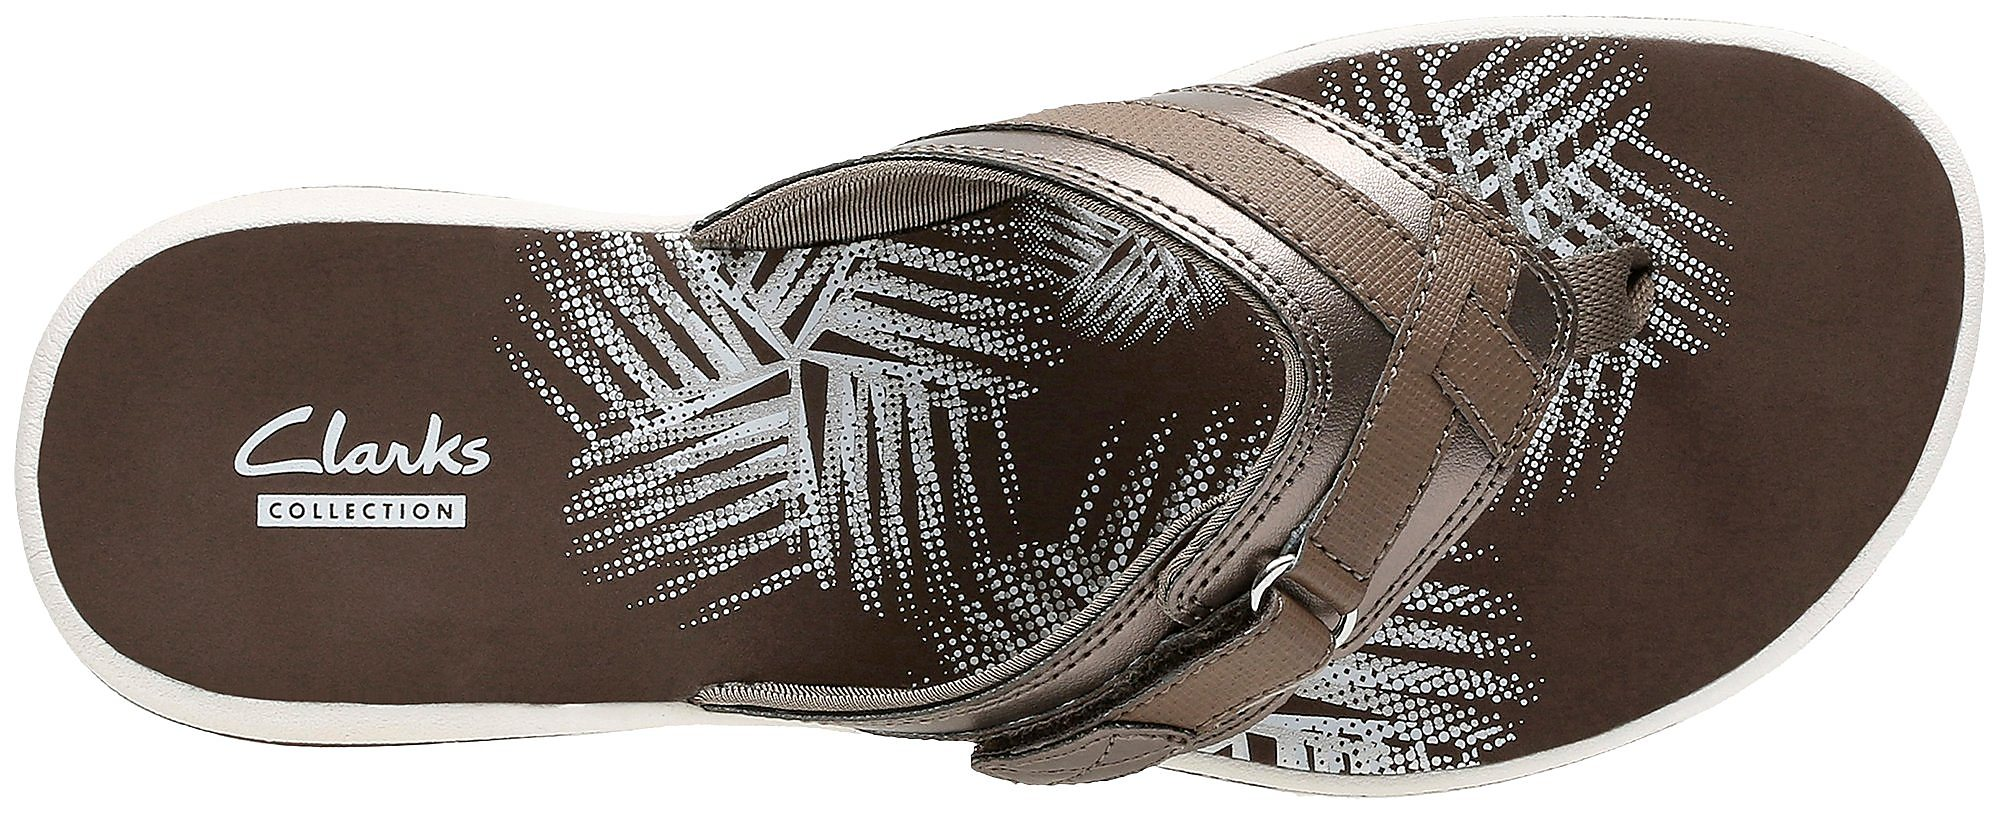 Clarks-Womens-Breeze-Sea-Flip-Flops-Comfort-Summer-Sandals thumbnail 15